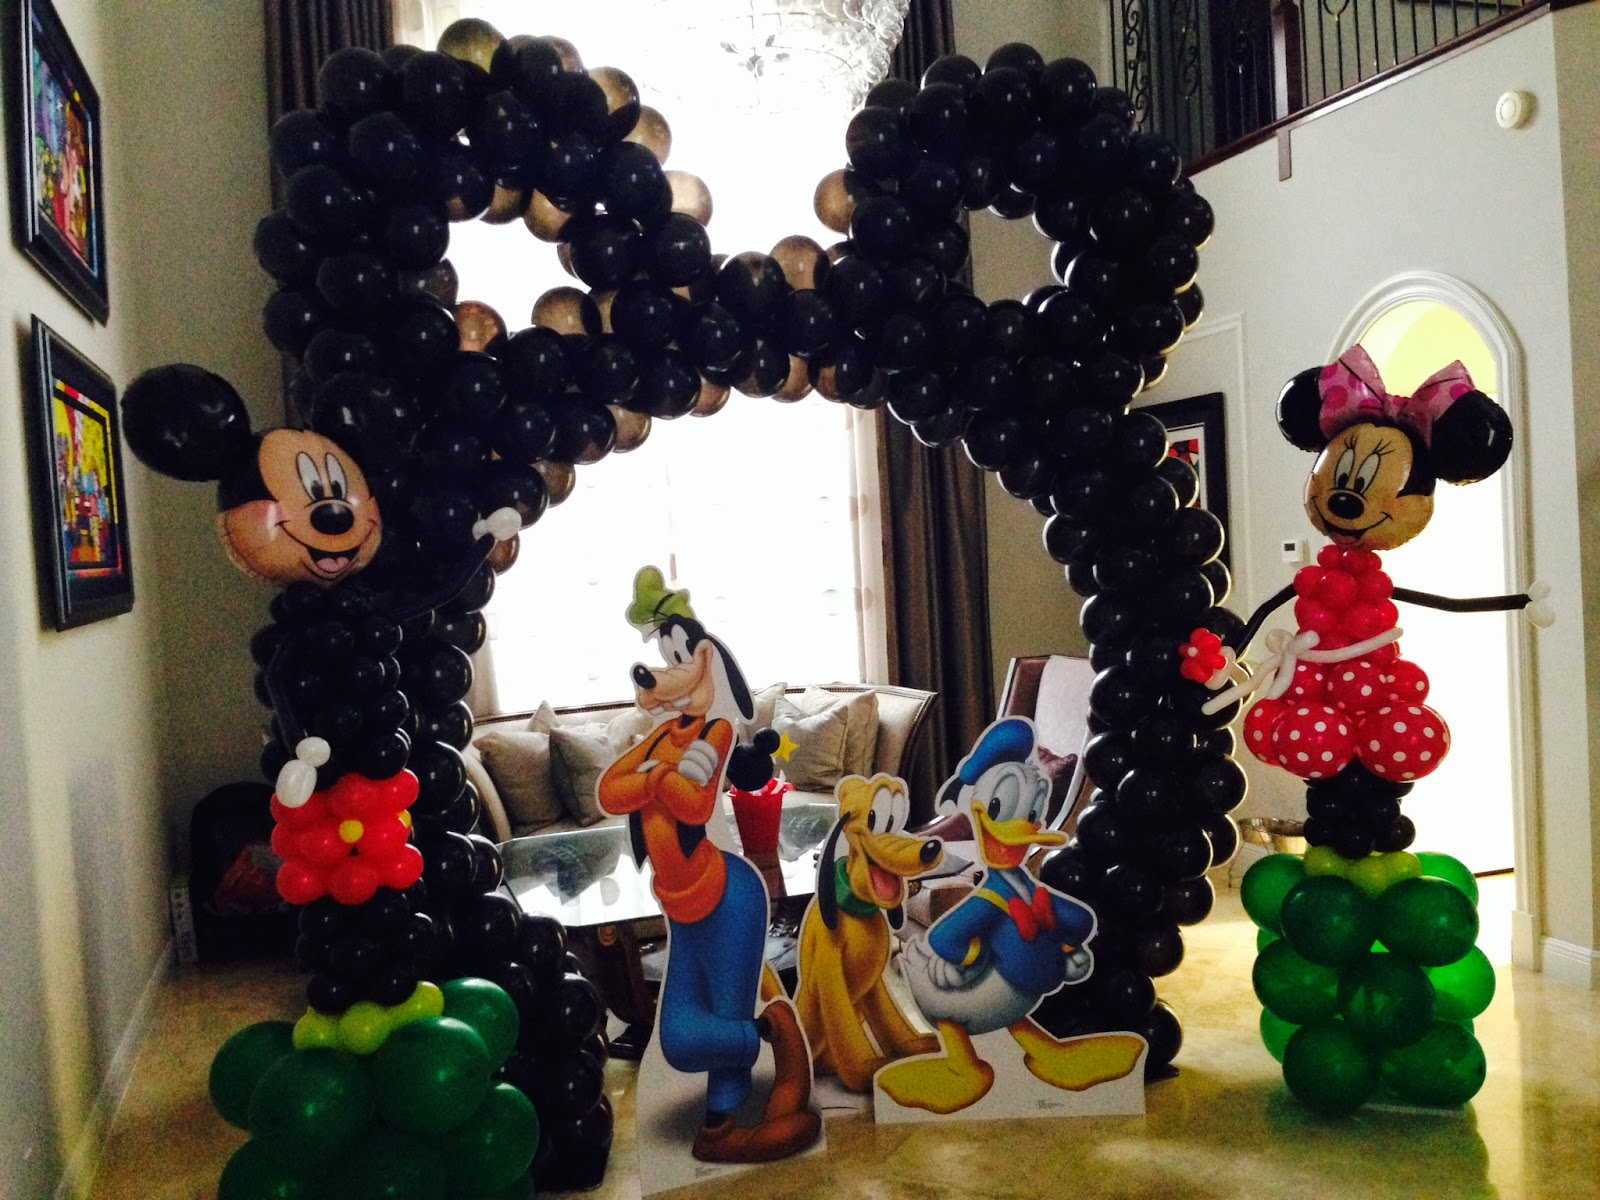 Mickey and Minnie character with balloons column